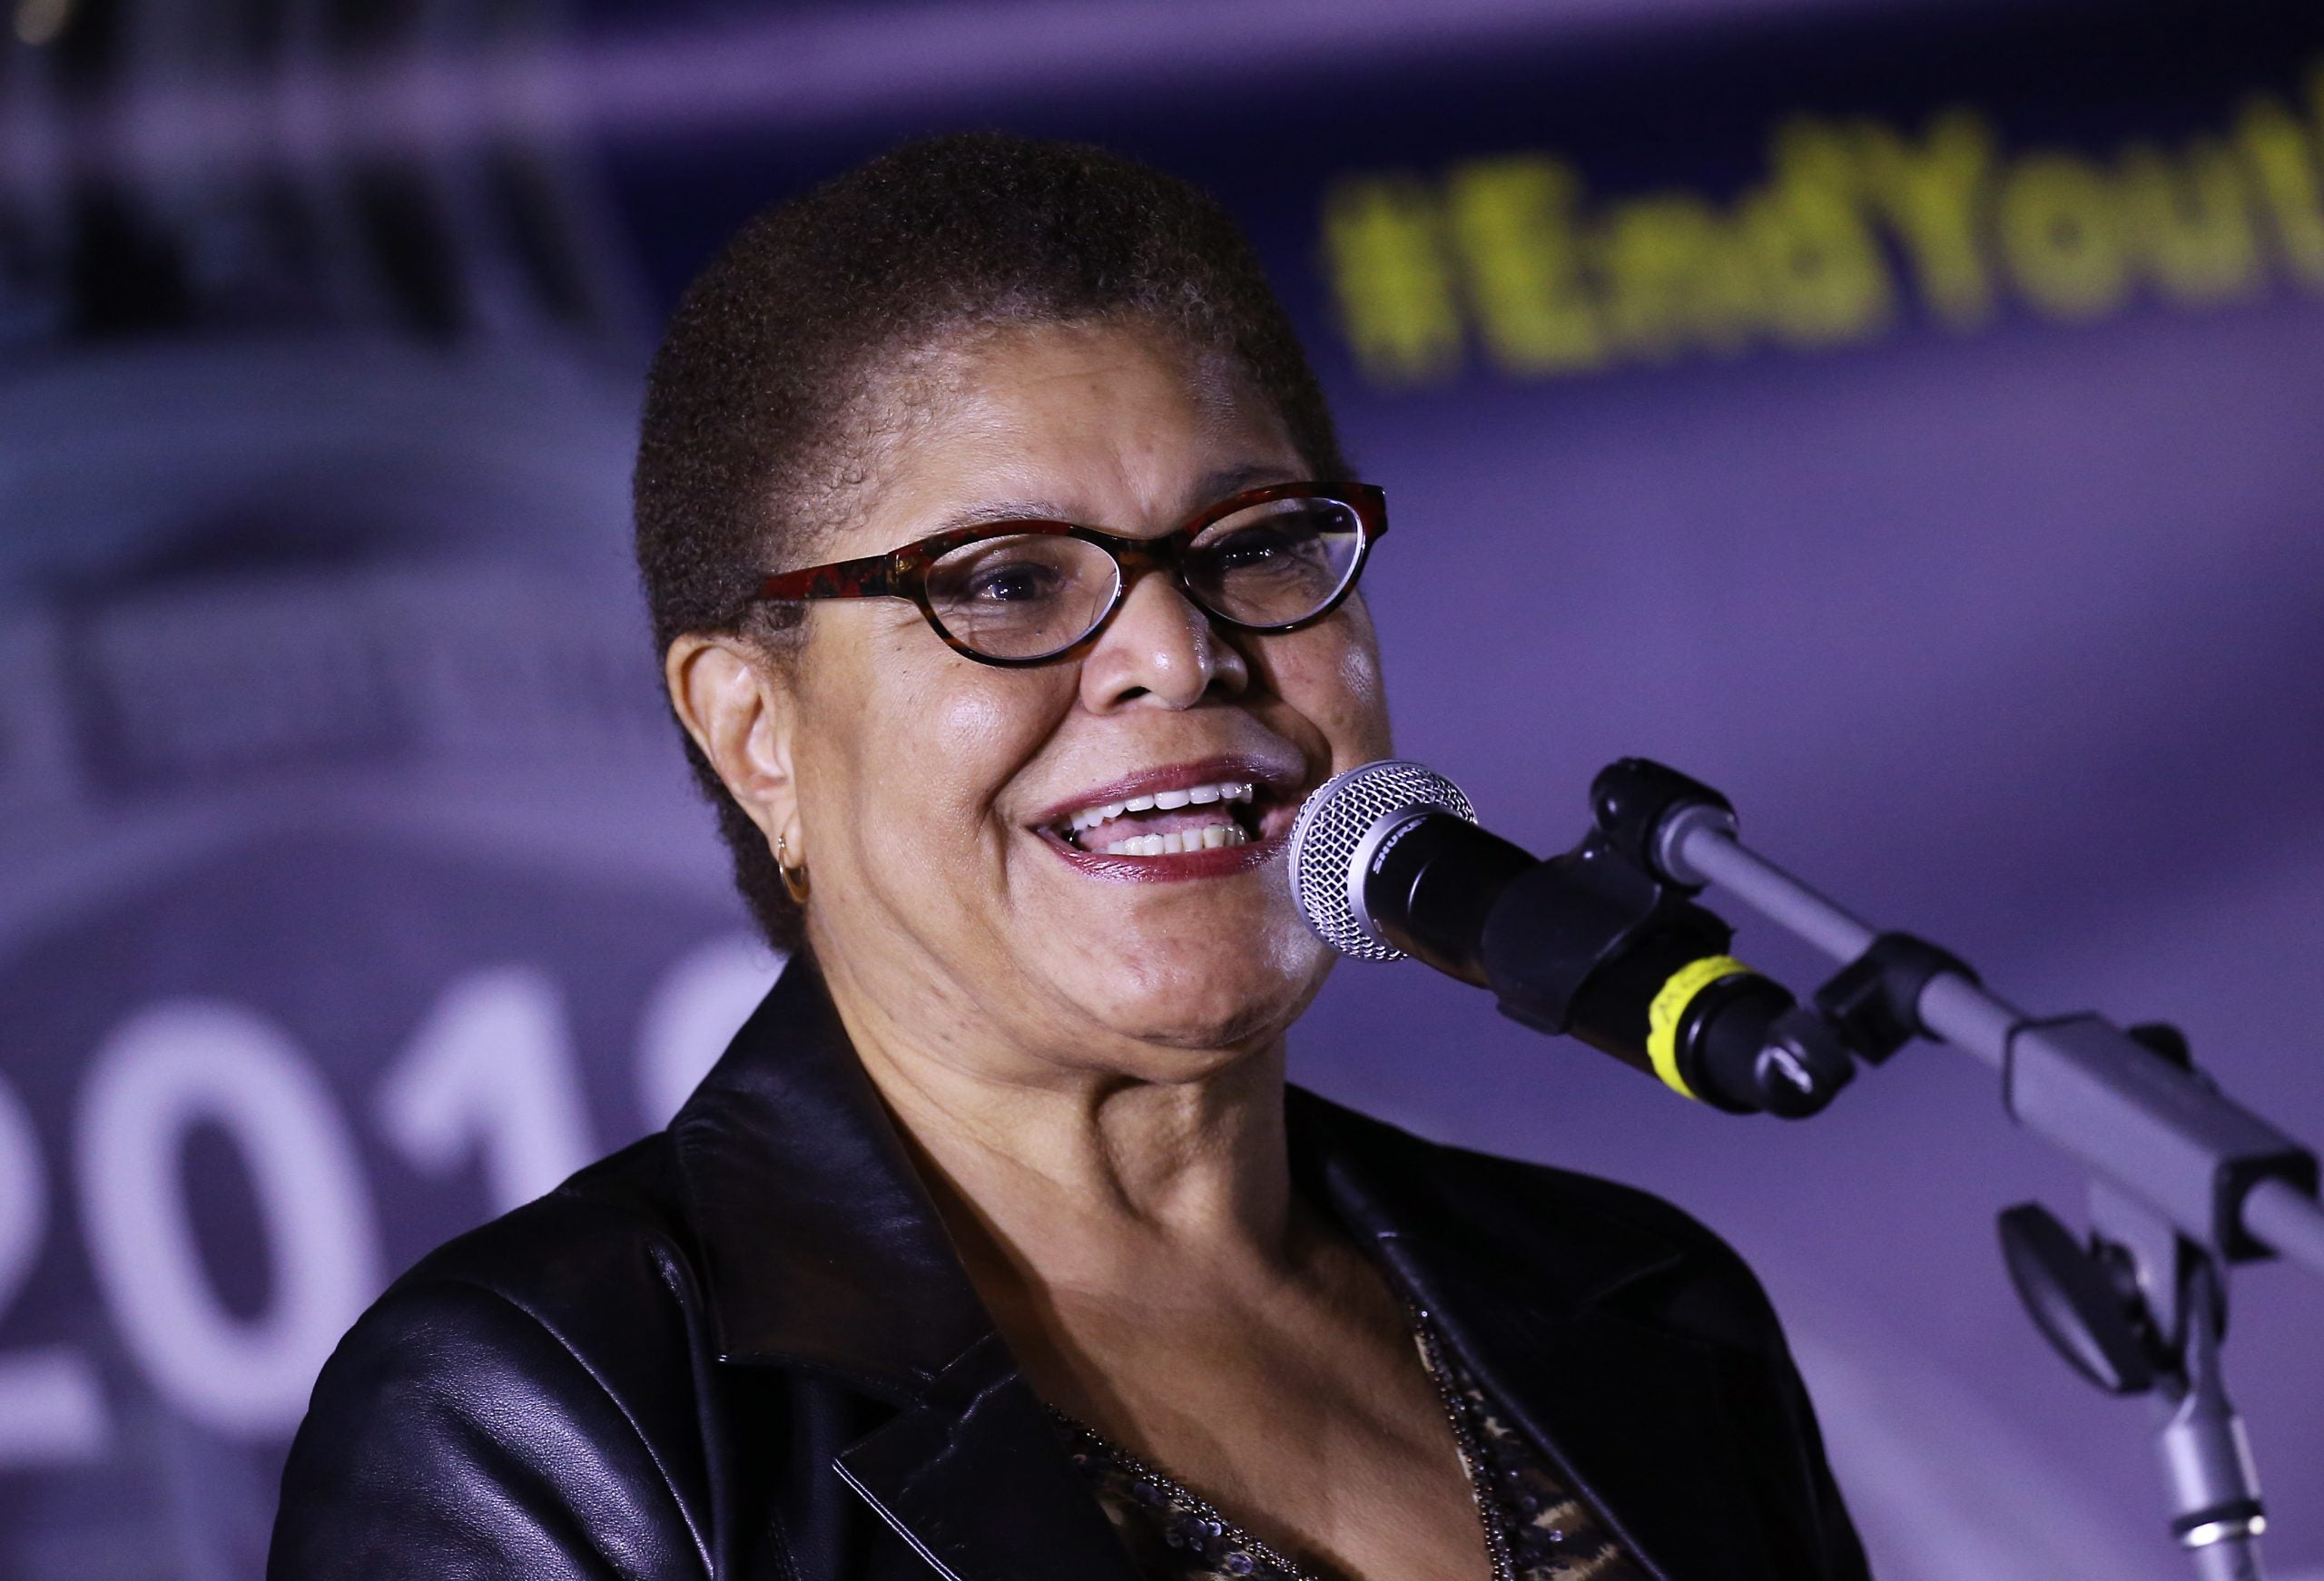 Chairwoman of the Congressional Black Caucus, Karen Bass speaks onstage during the National Night To End Youth Homelessness event held at Hollywood United Methodist Church